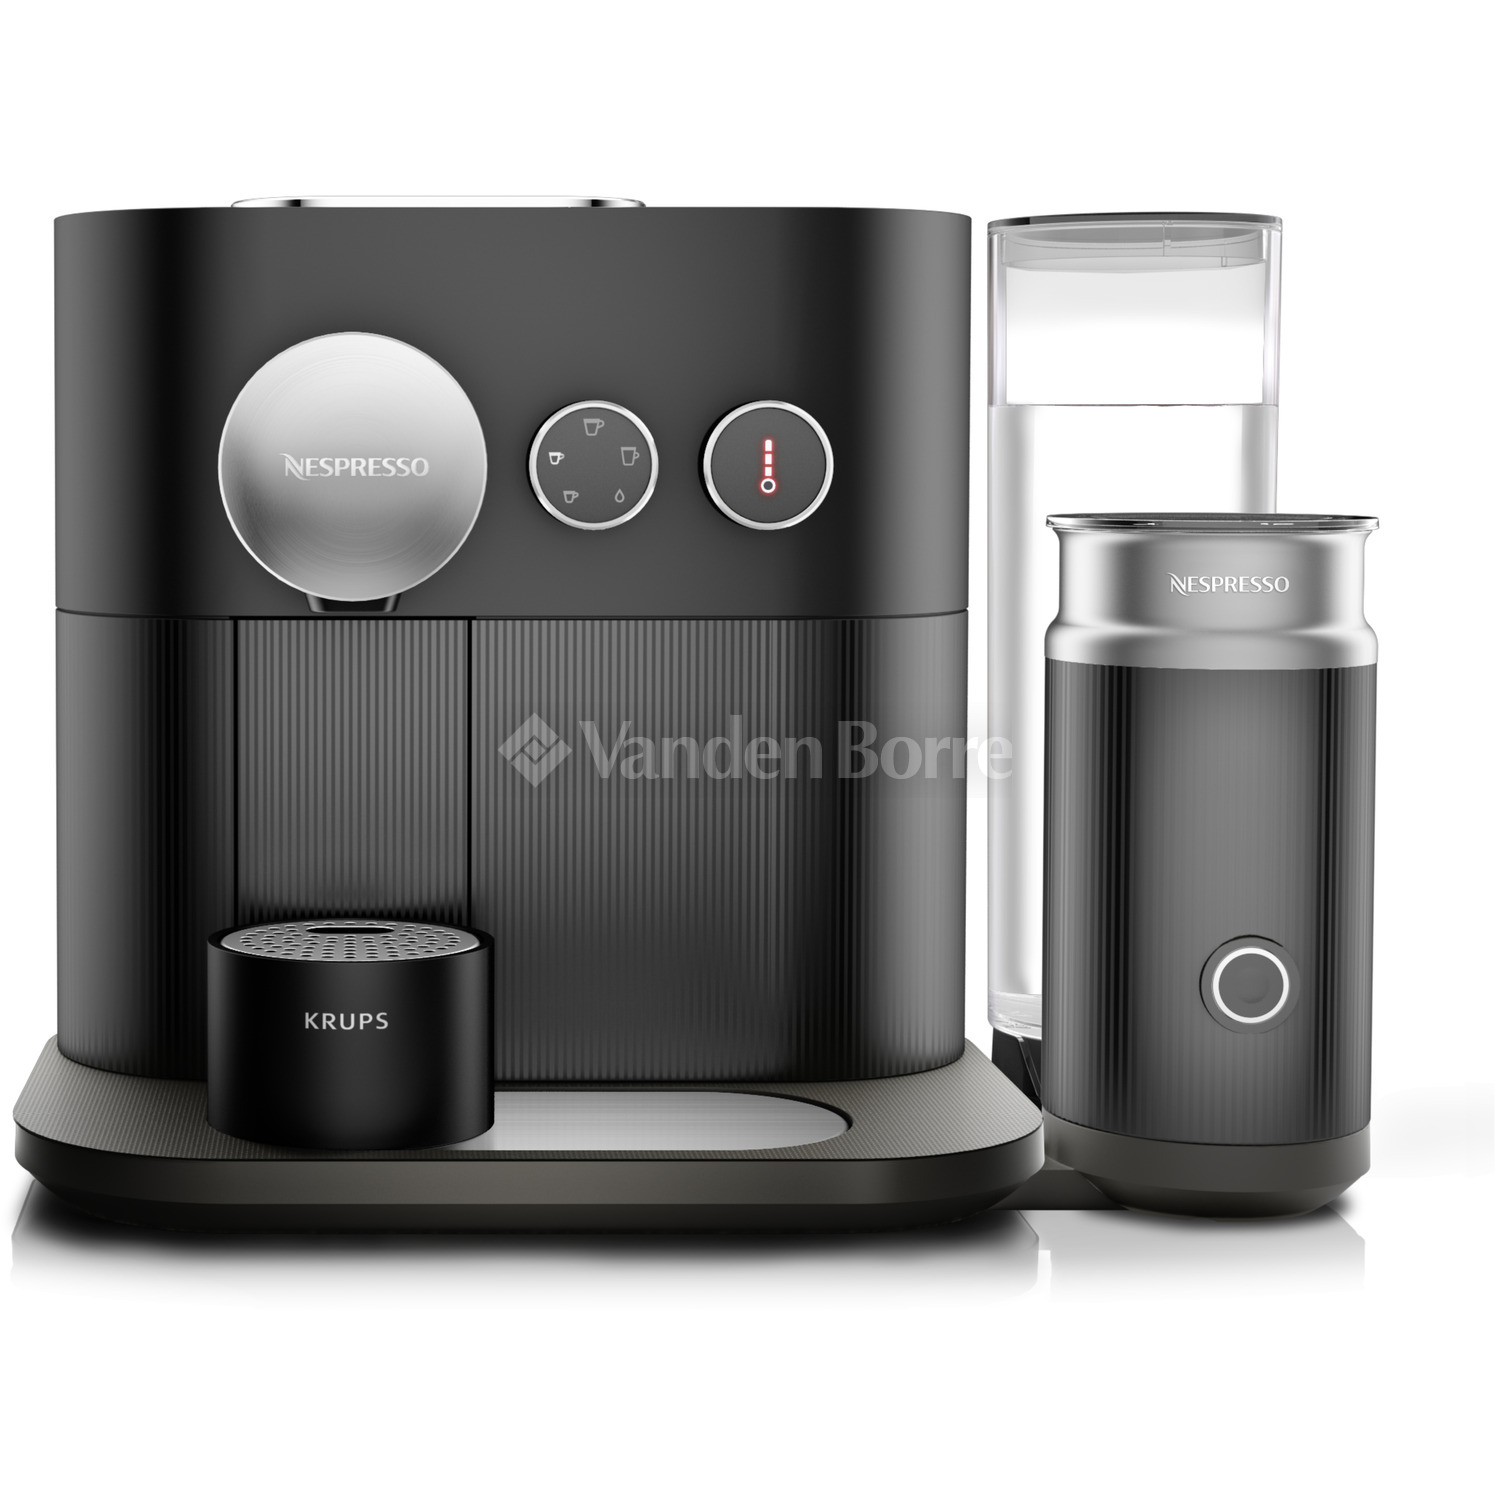 krups nespresso expert milk xn601810 chez vanden borre comparez et achetez facilement. Black Bedroom Furniture Sets. Home Design Ideas